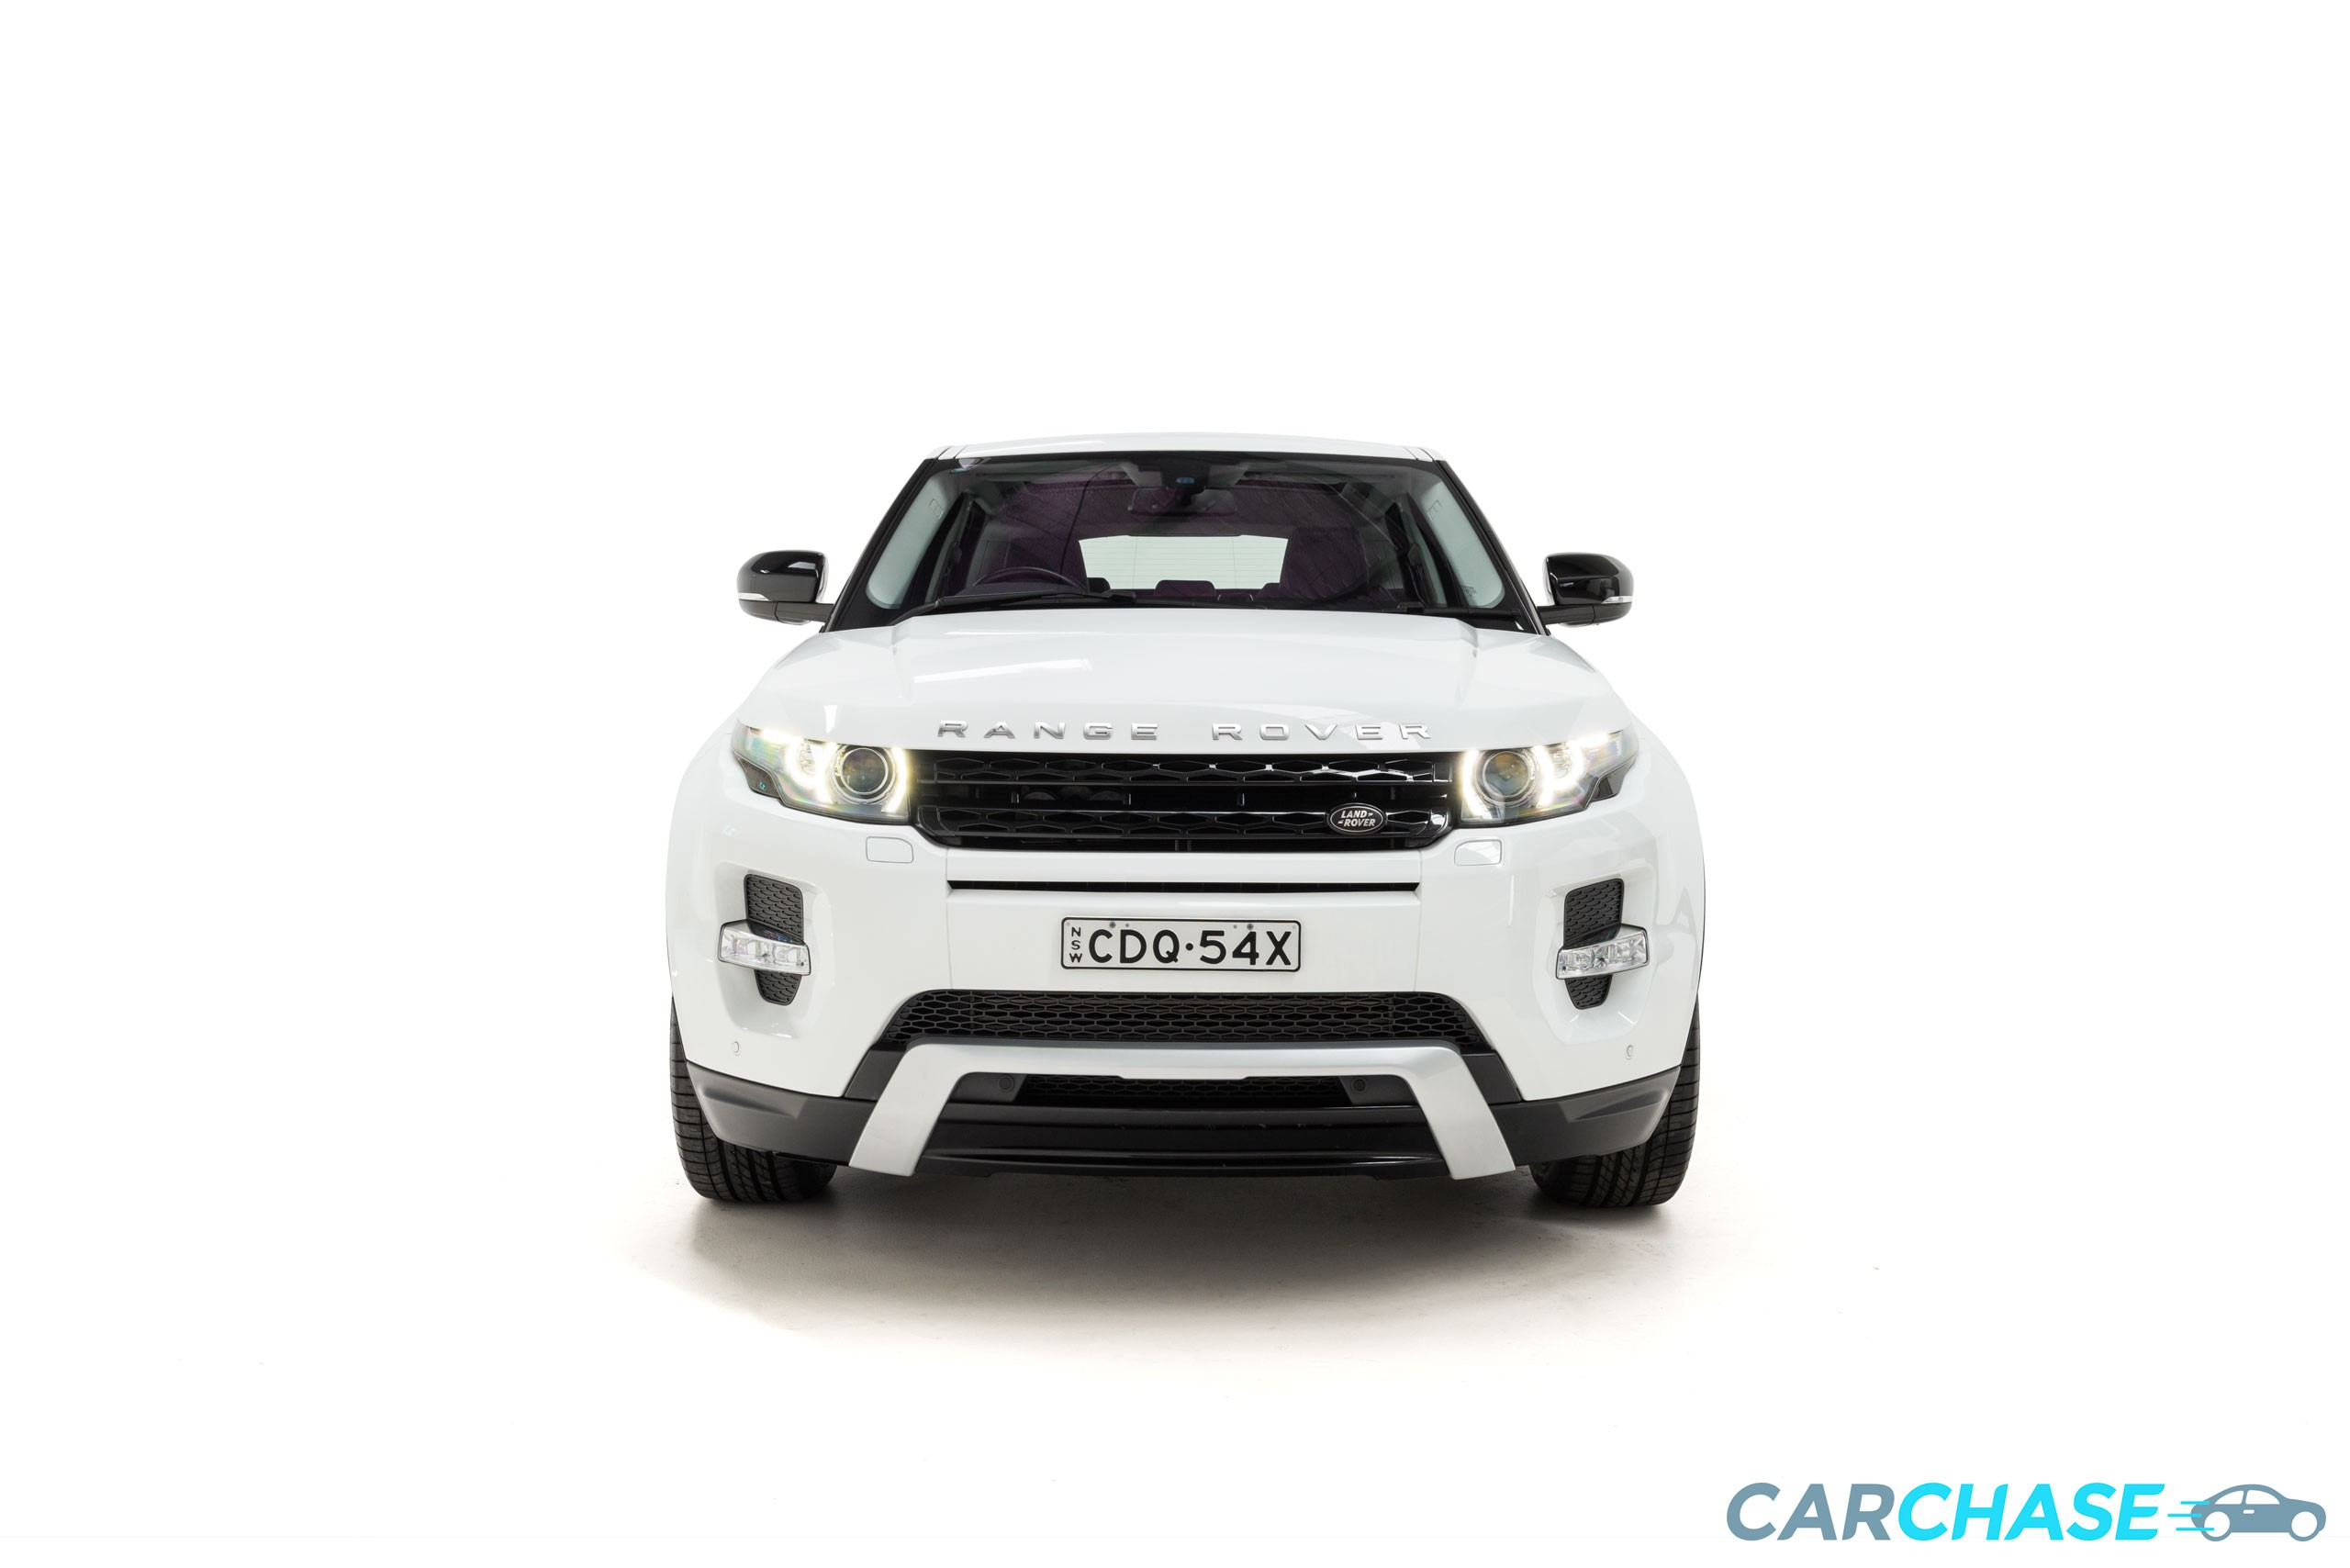 Image of front profile of 2013 Land Rover Range Rover Evoque SD4 Dynamic